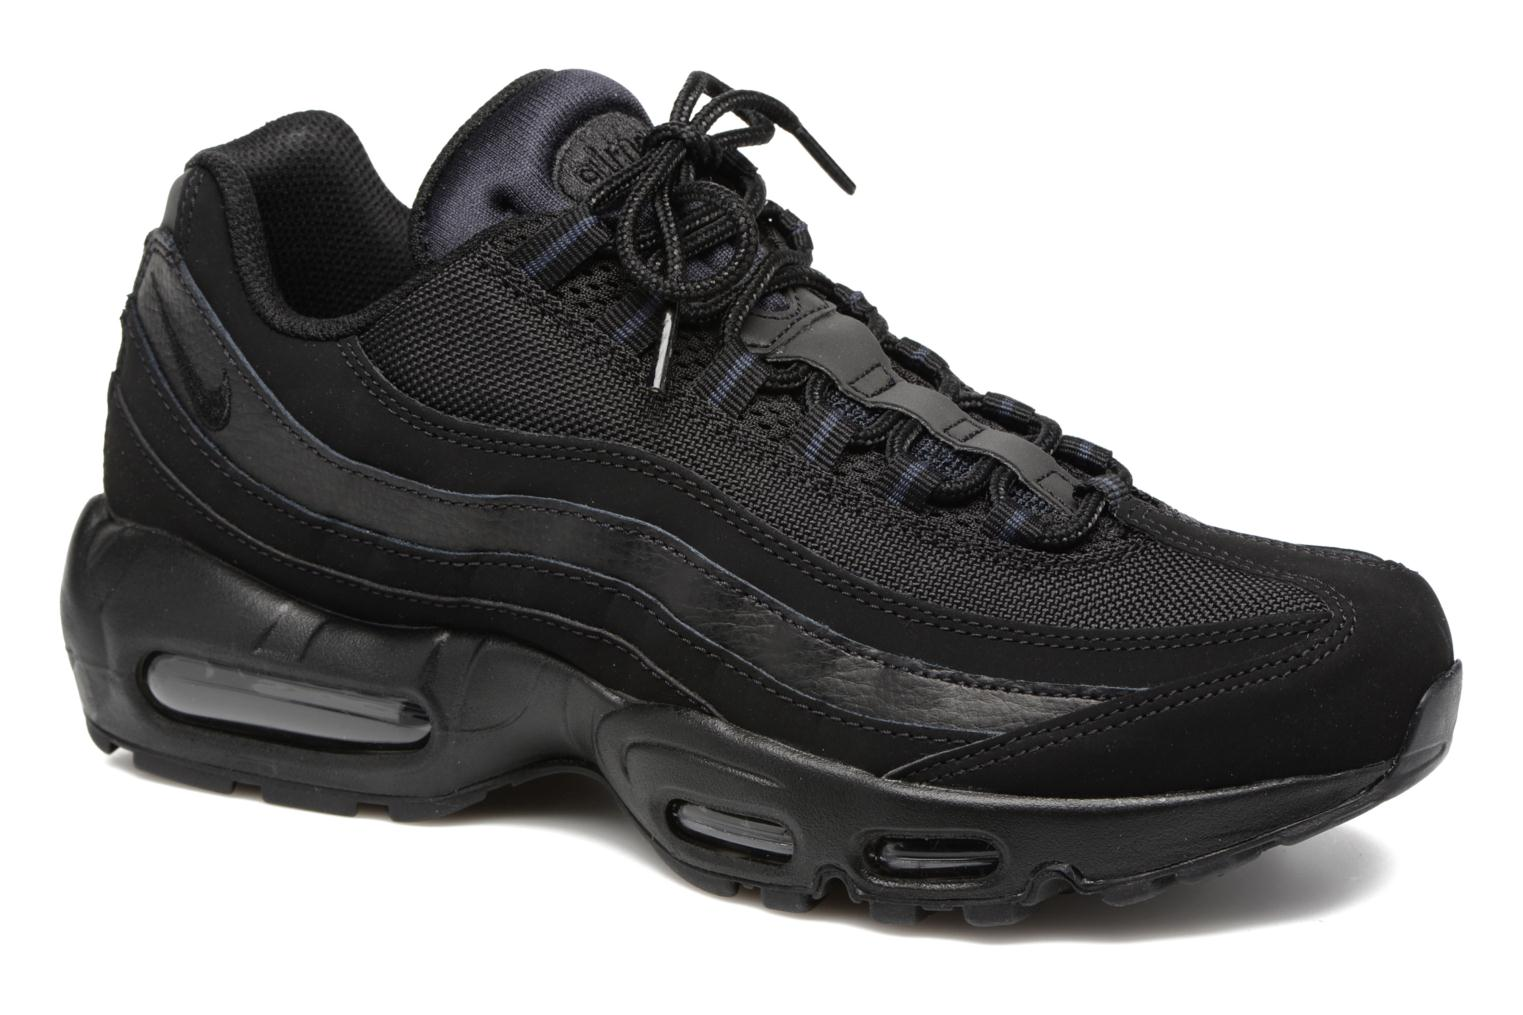 Black Black Nike Max Air Anthracite '95 xqwx1A8Y